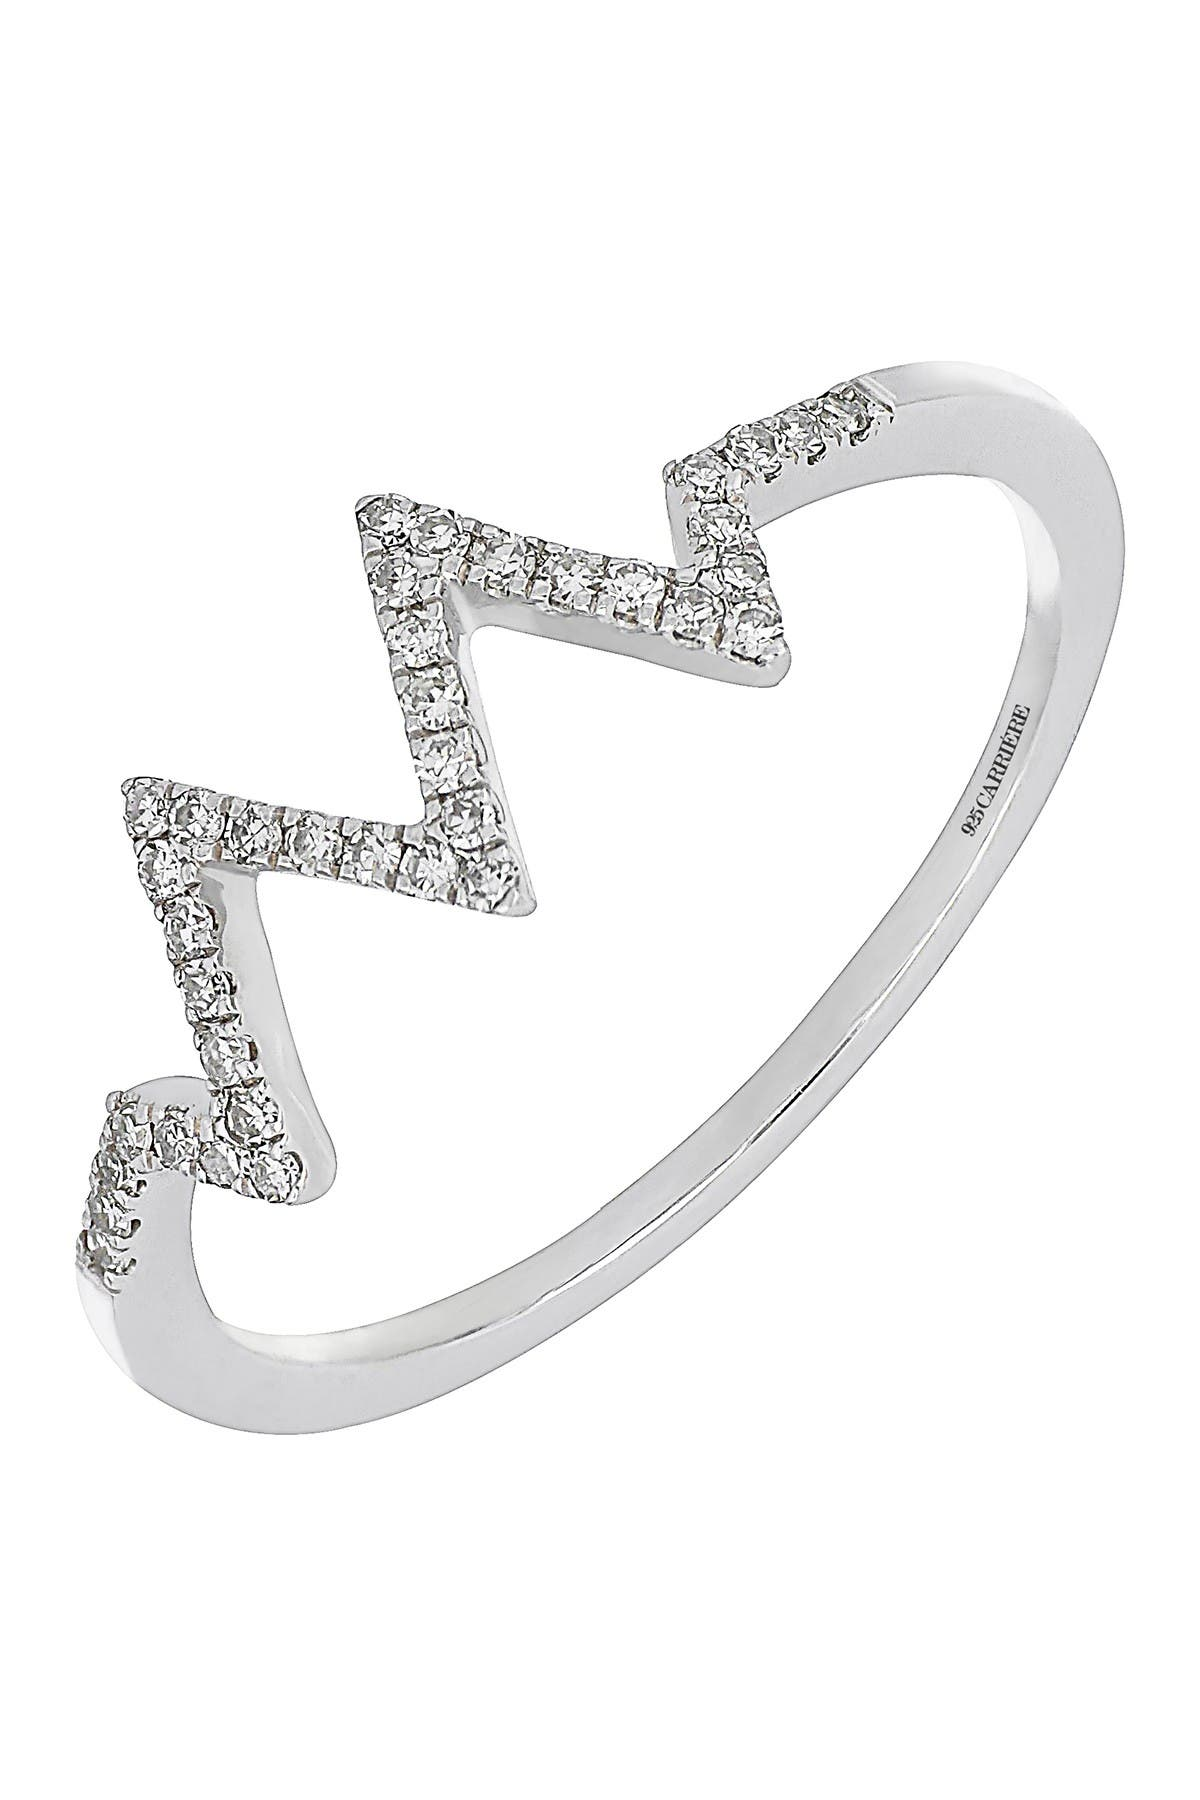 Image of Carriere Sterling Silver Pave Diamond ZigZag Ring - 0.12 ctw